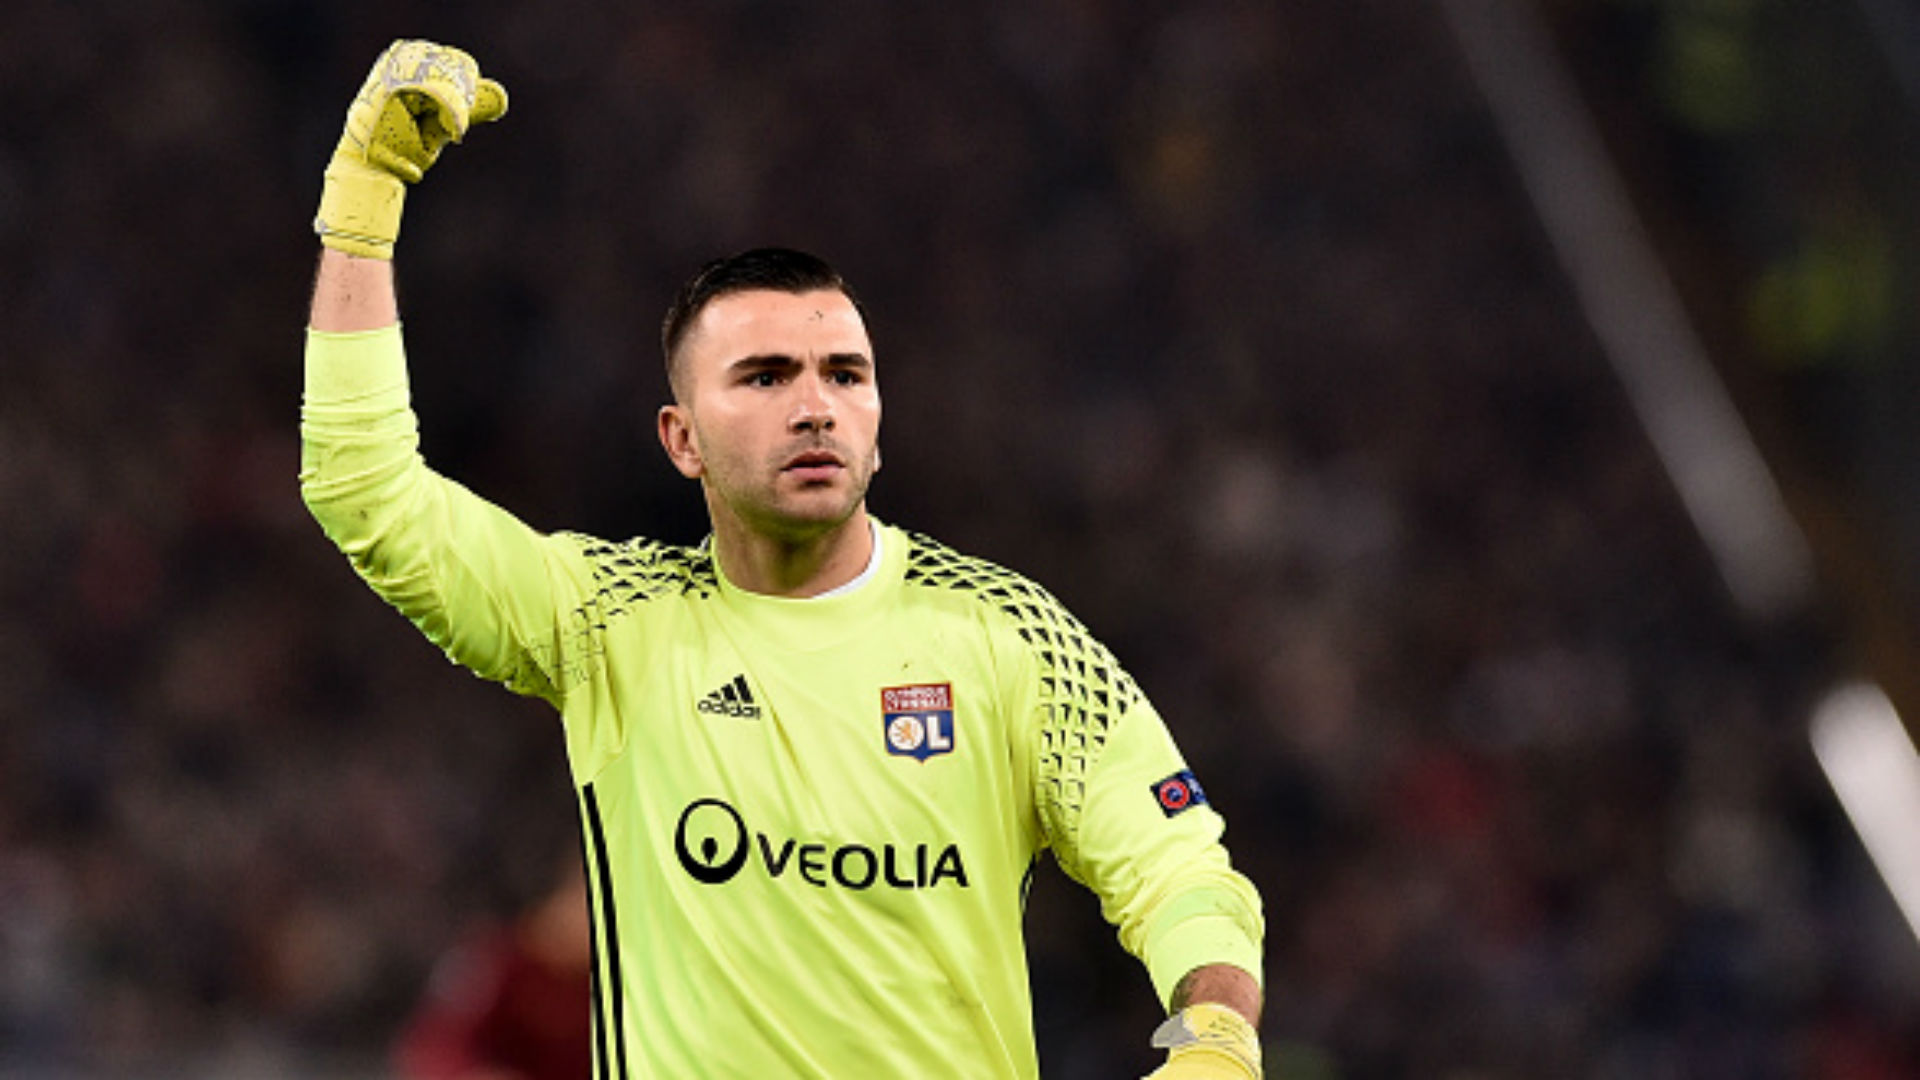 Mercato - OL : Des tensions entre Anthony Lopes et Ciprian Tatarusanu ?